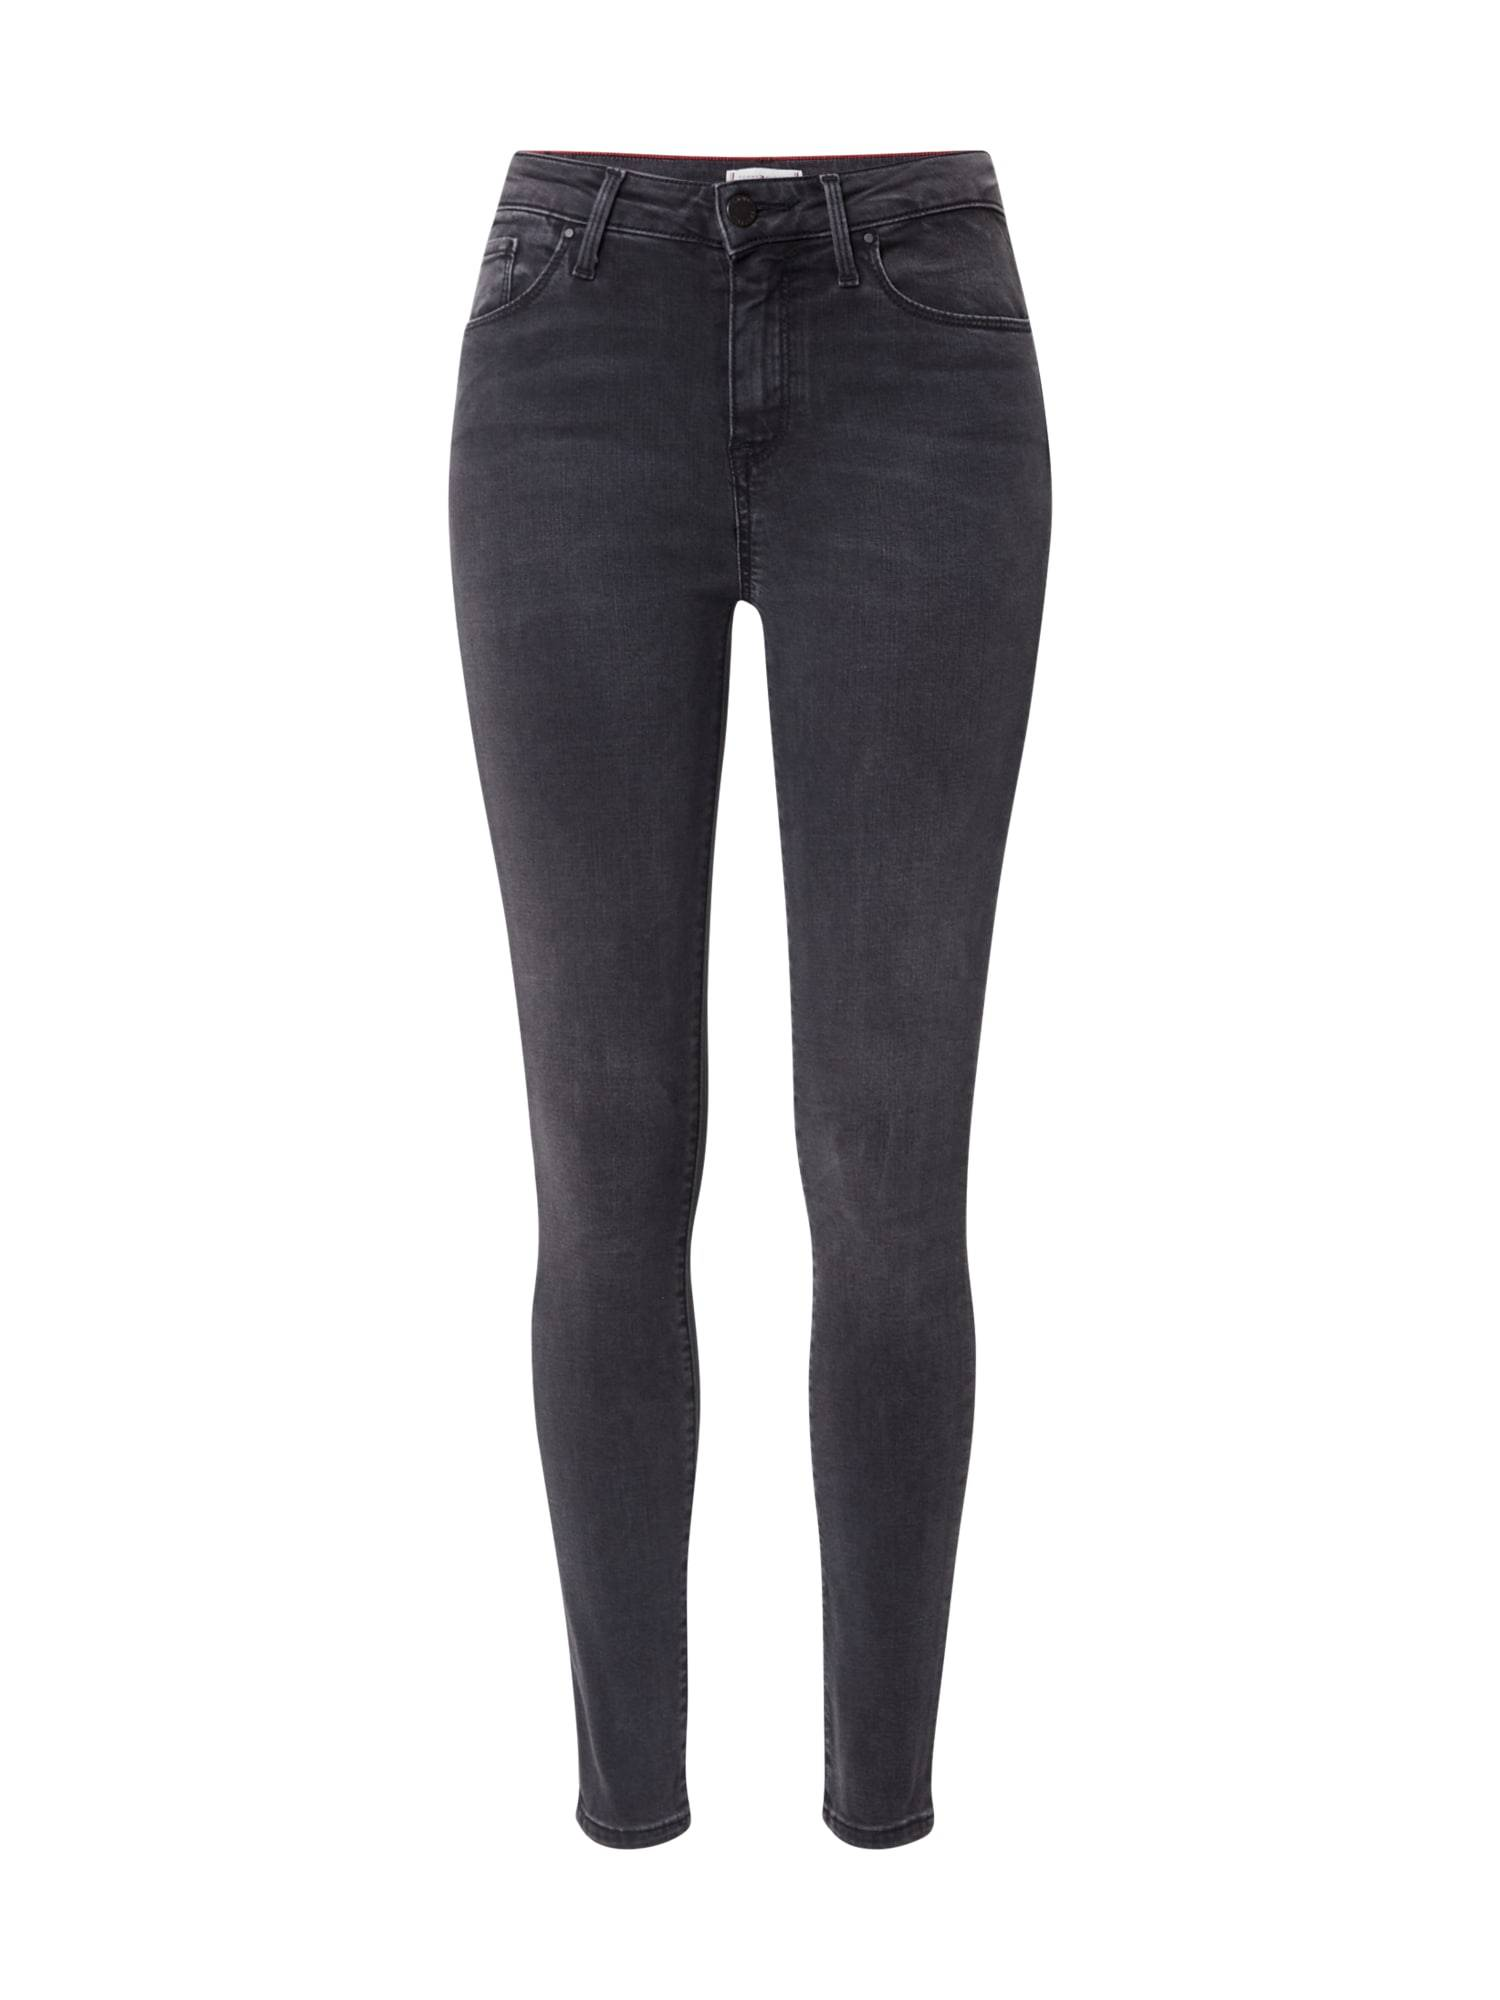 Tommy Hilfiger Jean  - Gris - Taille: 27 - female